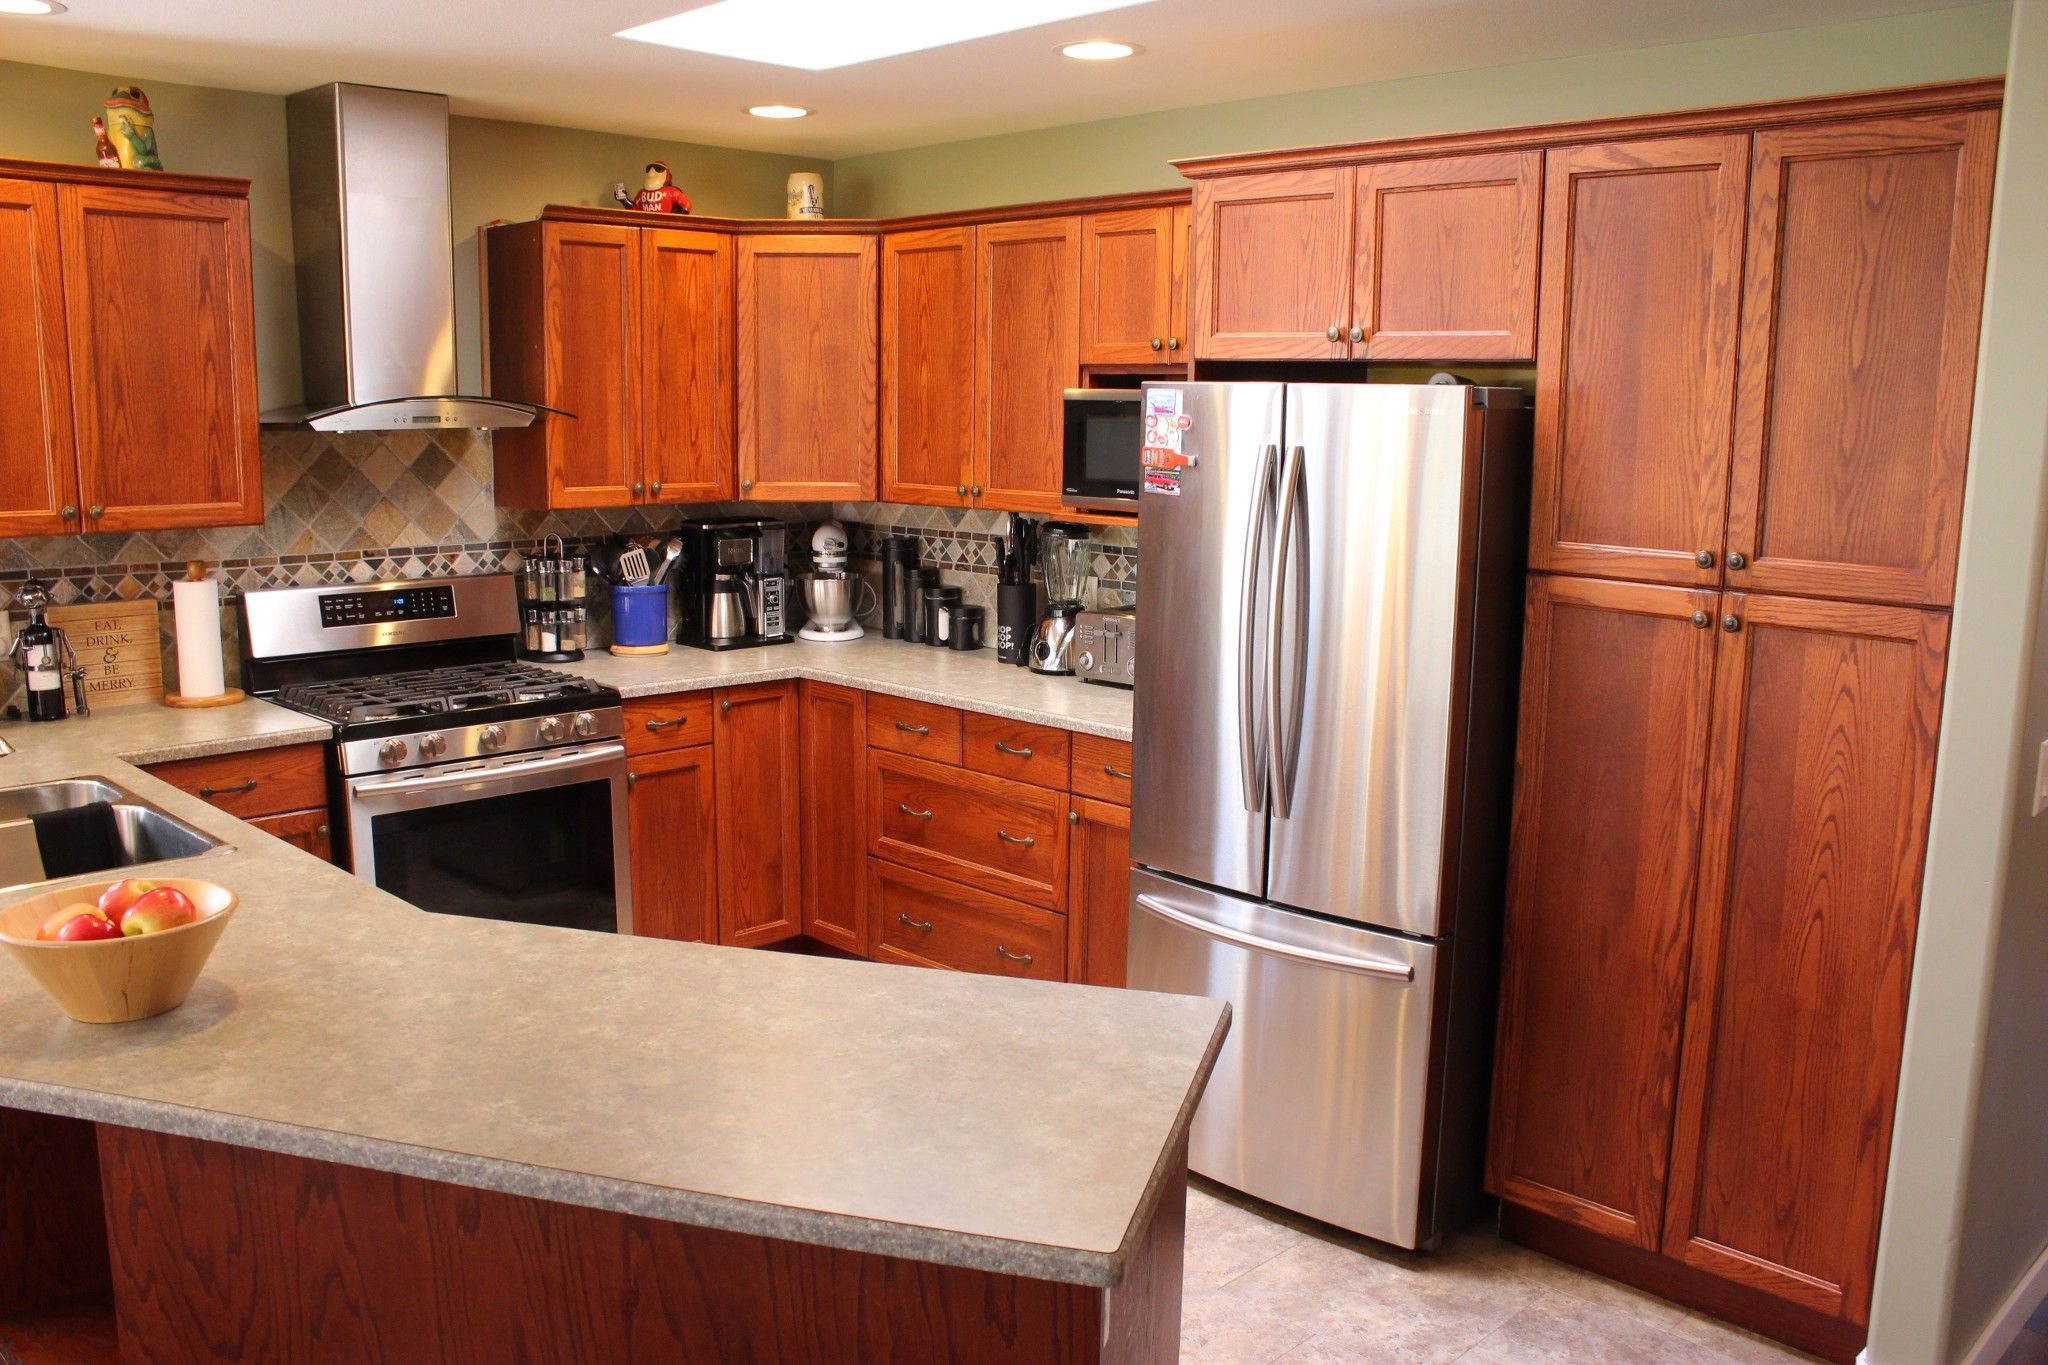 Photo 5: Photos: 3696 Navatanee Drive in Kamloops: South Thompson Valley House for sale : MLS®# 148660